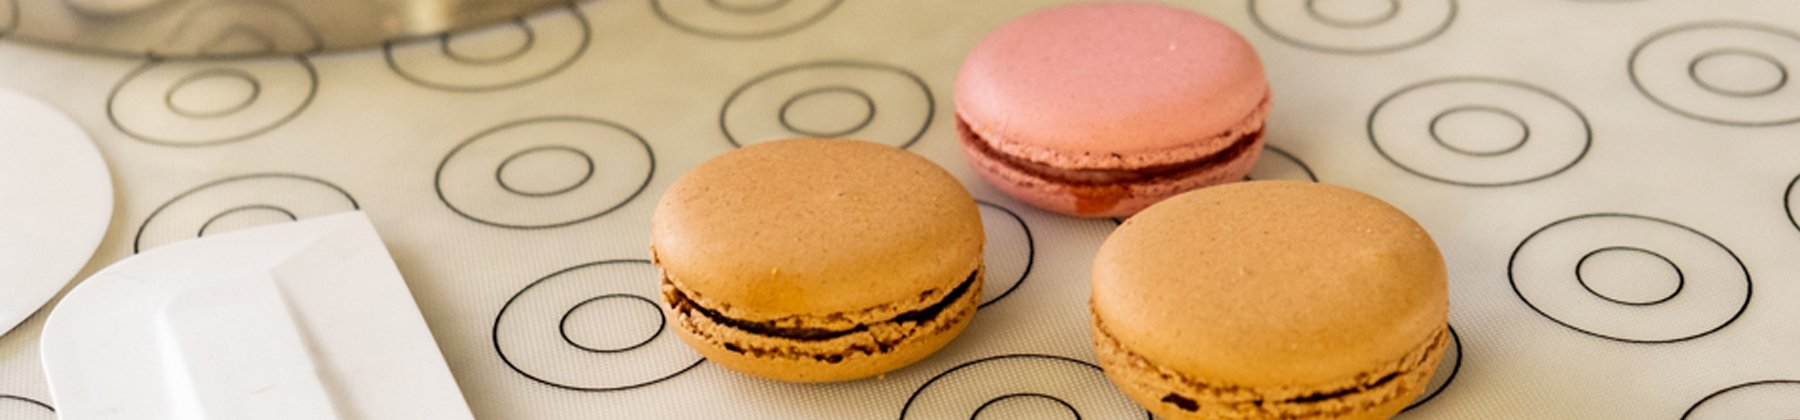 Photo of de Buyer macaron mat with colorful macarons sitting on top.